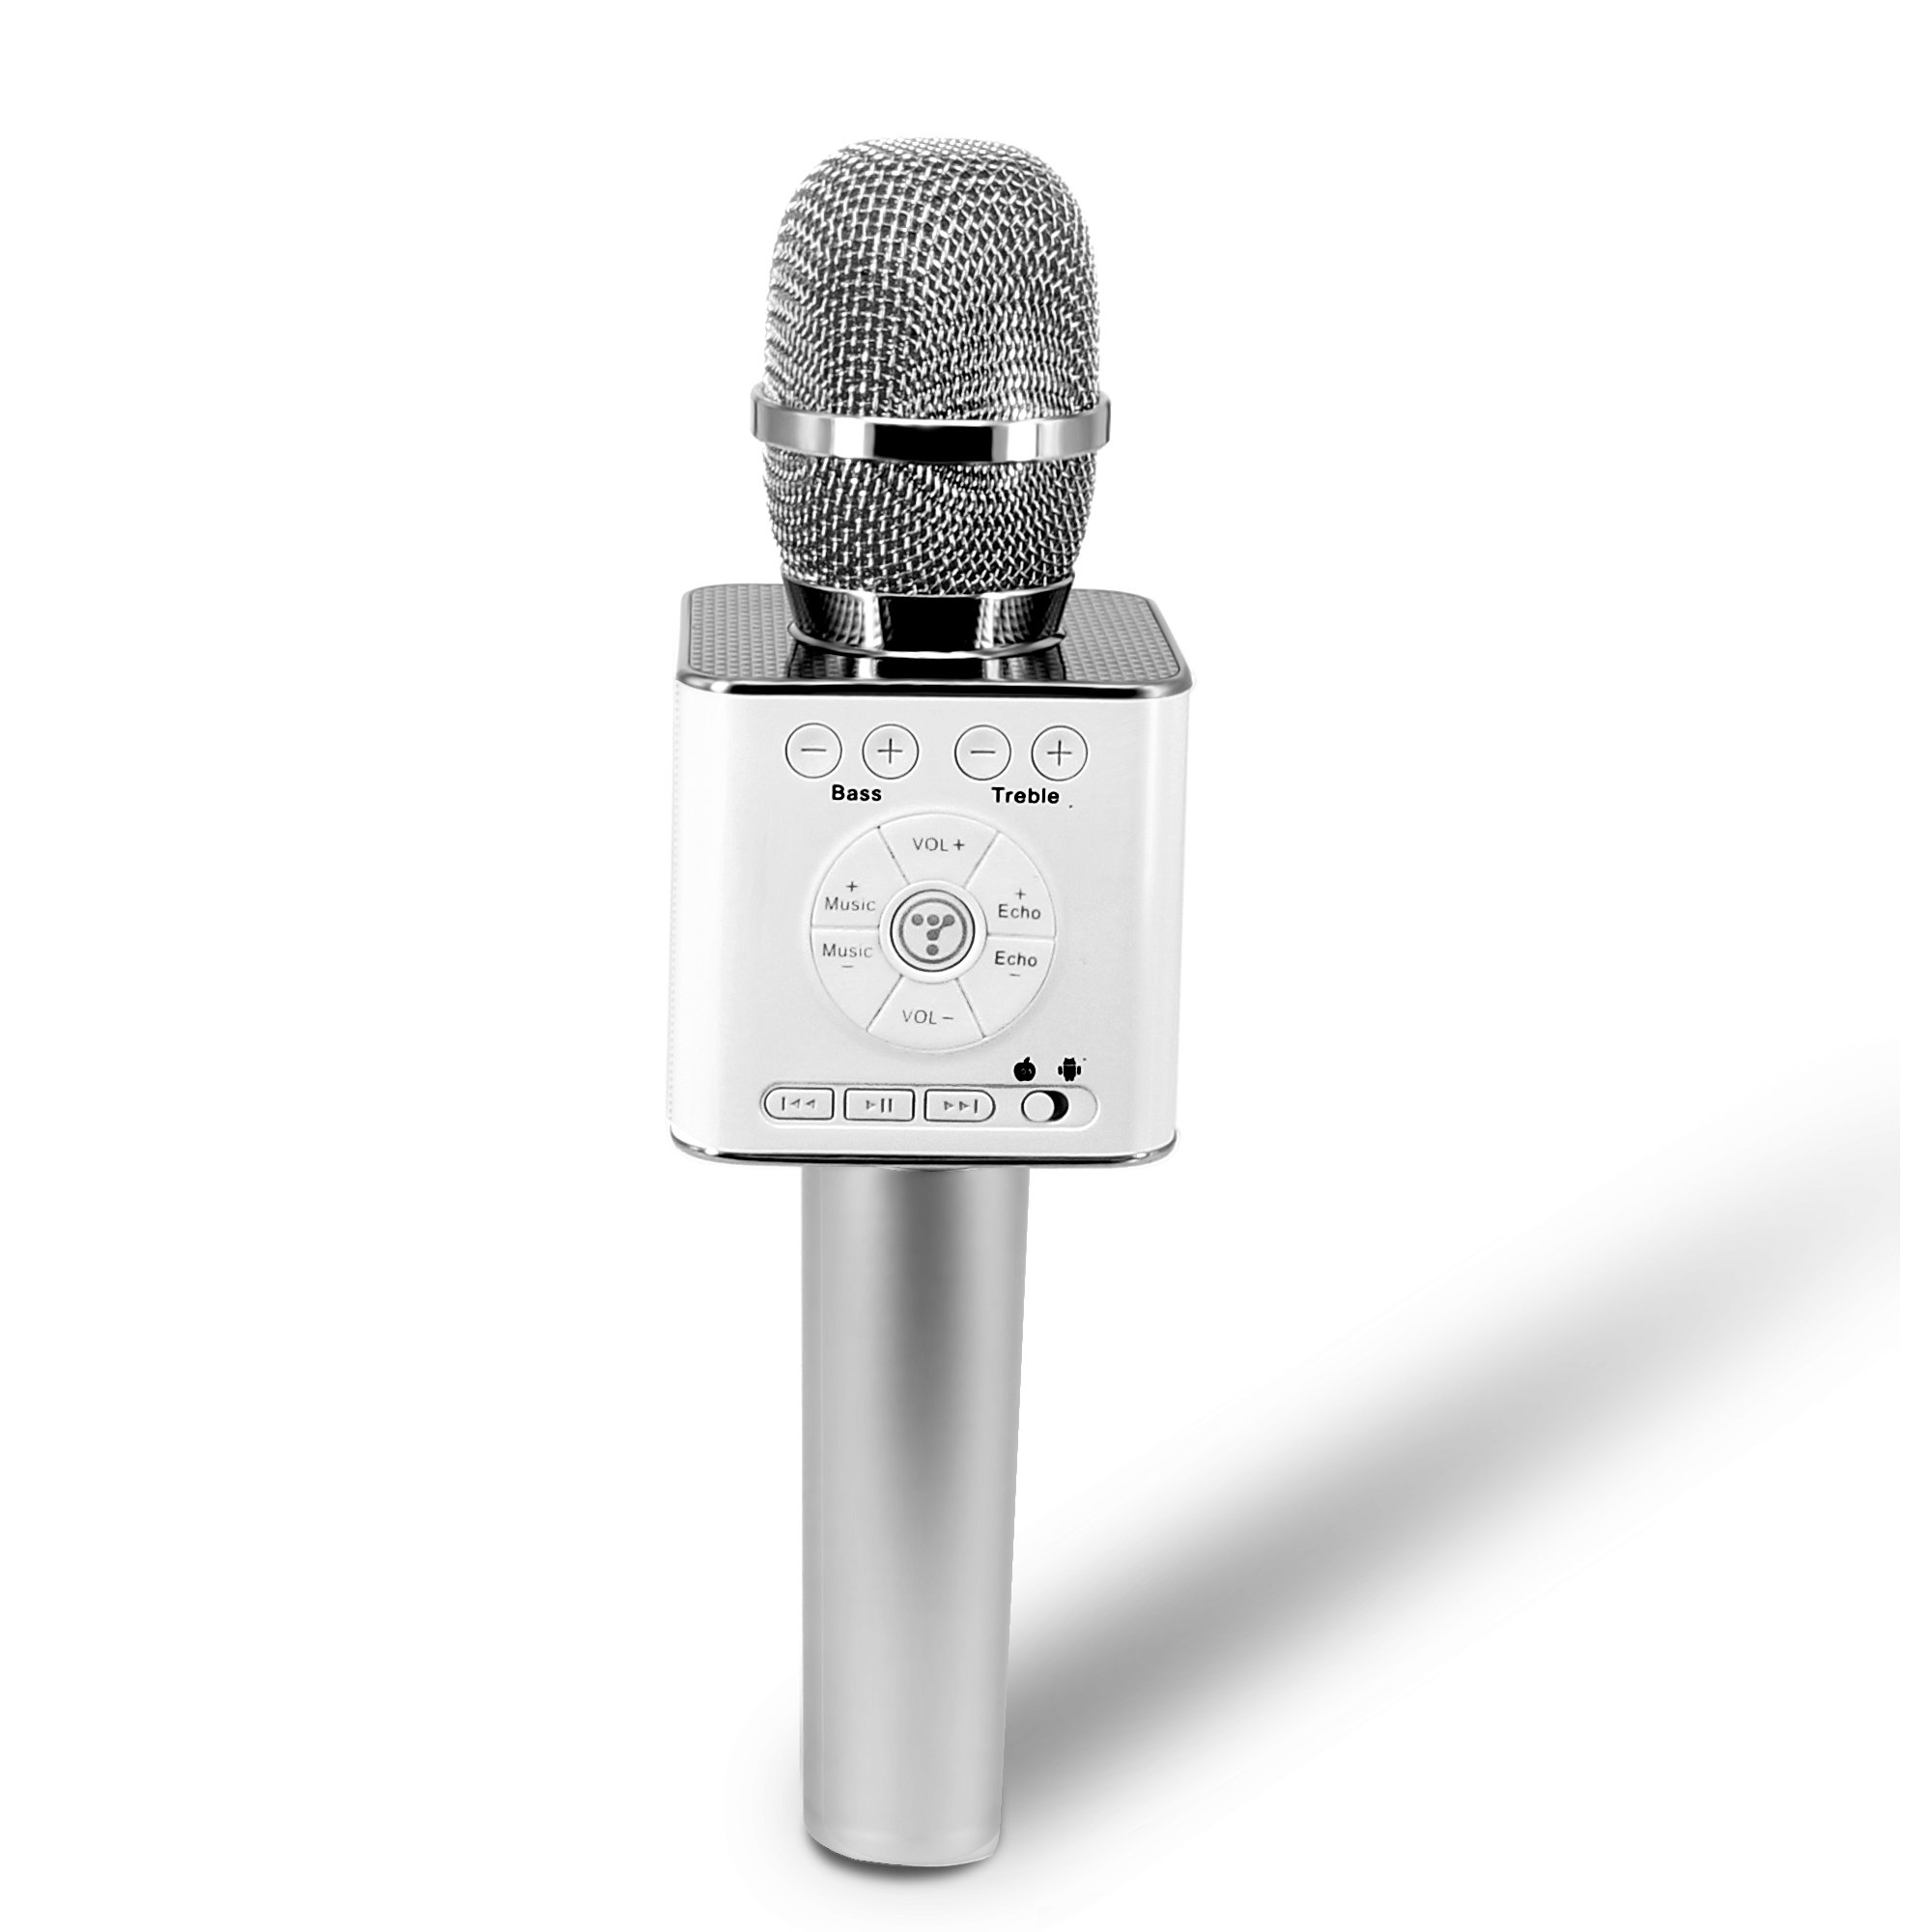 TOSING 04 Portable Wireless Karaoke Microphone Bluetooth Speaker 3-in-1 KTV Player for iOS/Android Smartphone/Tablet Handheld Singing & Recording (Sliver)